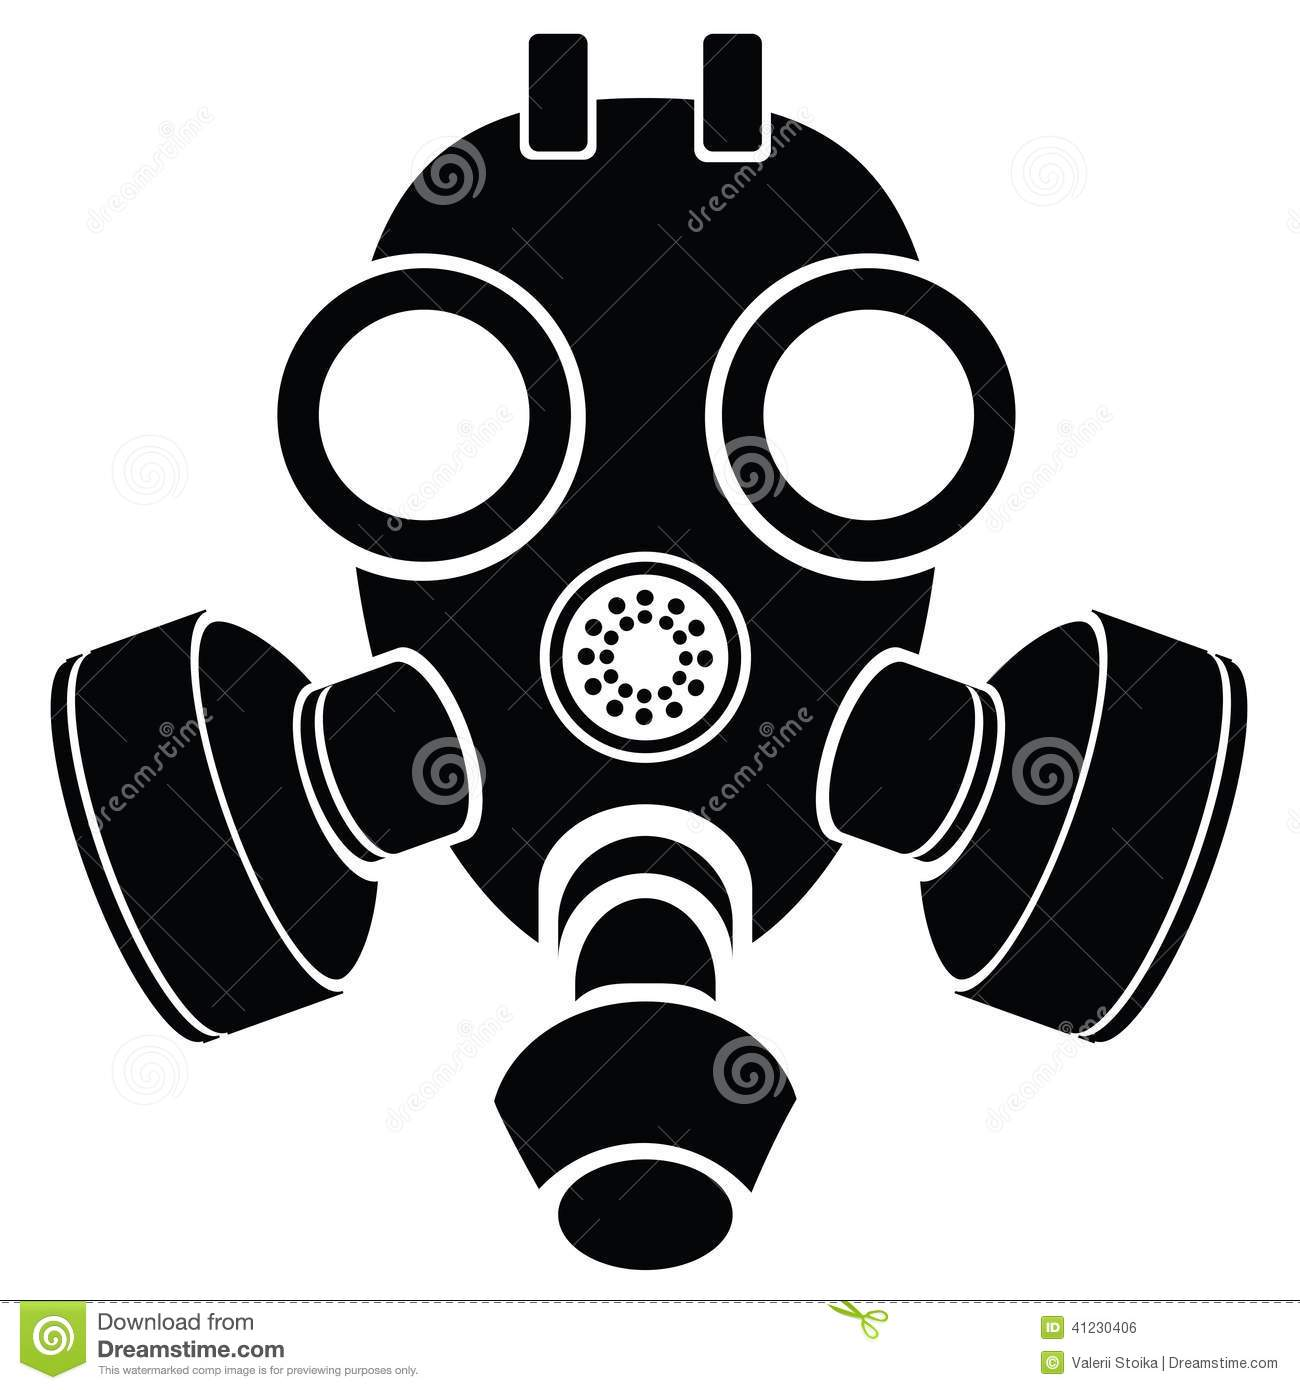 Illustration with silhouette of gas mask on a white background for    Gas Mask Silhouette Vector